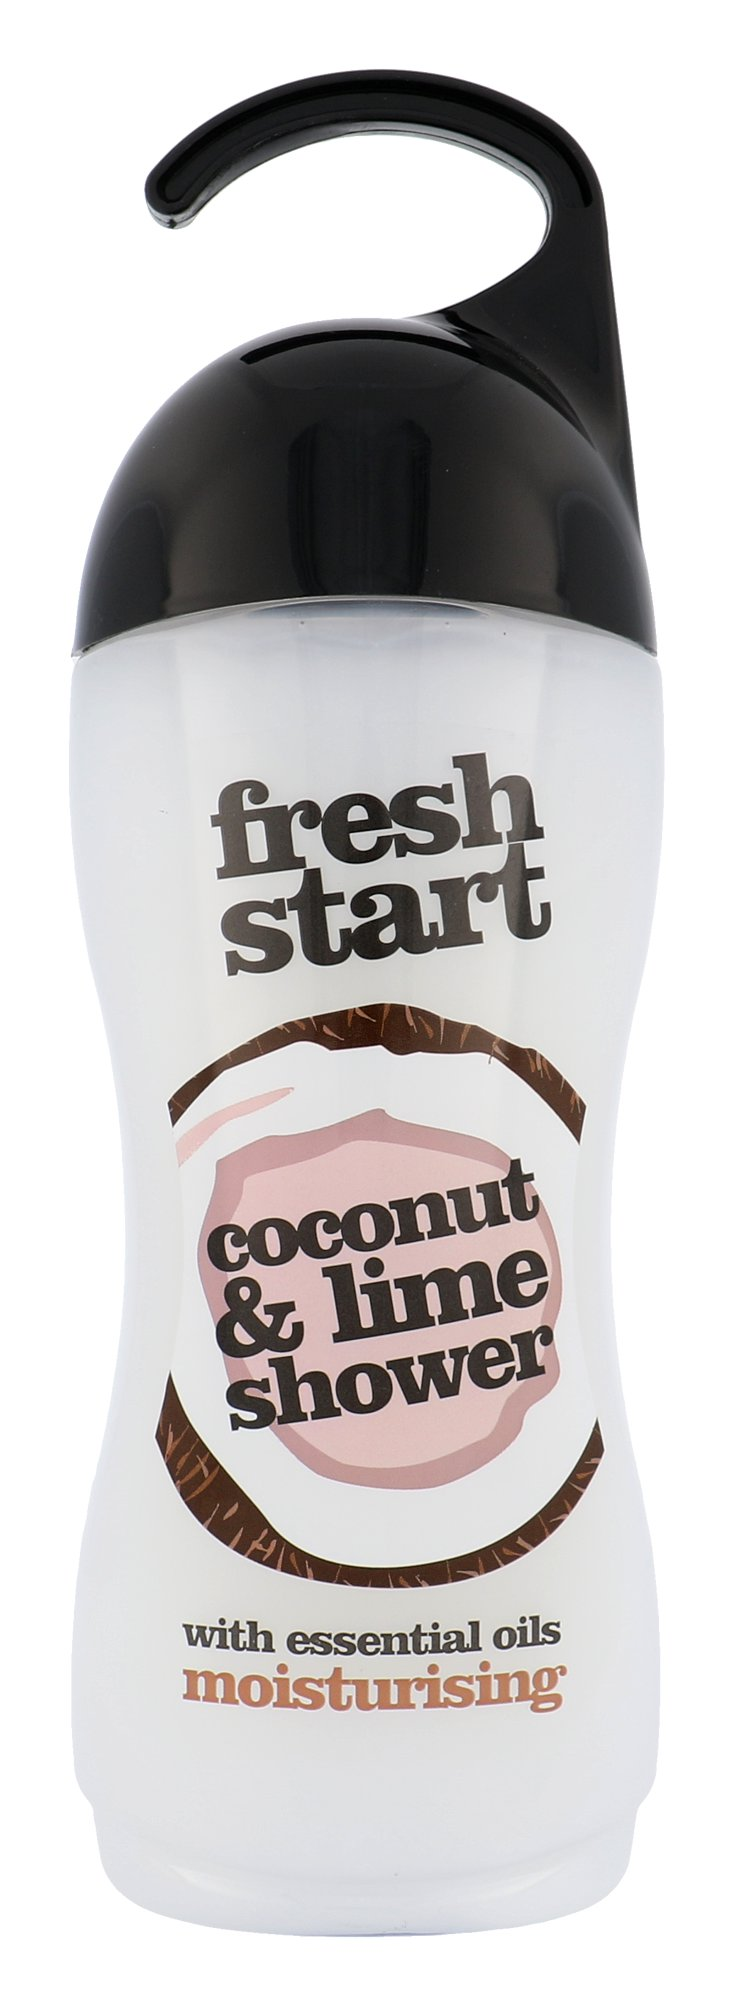 Xpel Fresh Start Coconut & Lime, tusfürdő gél 400ml